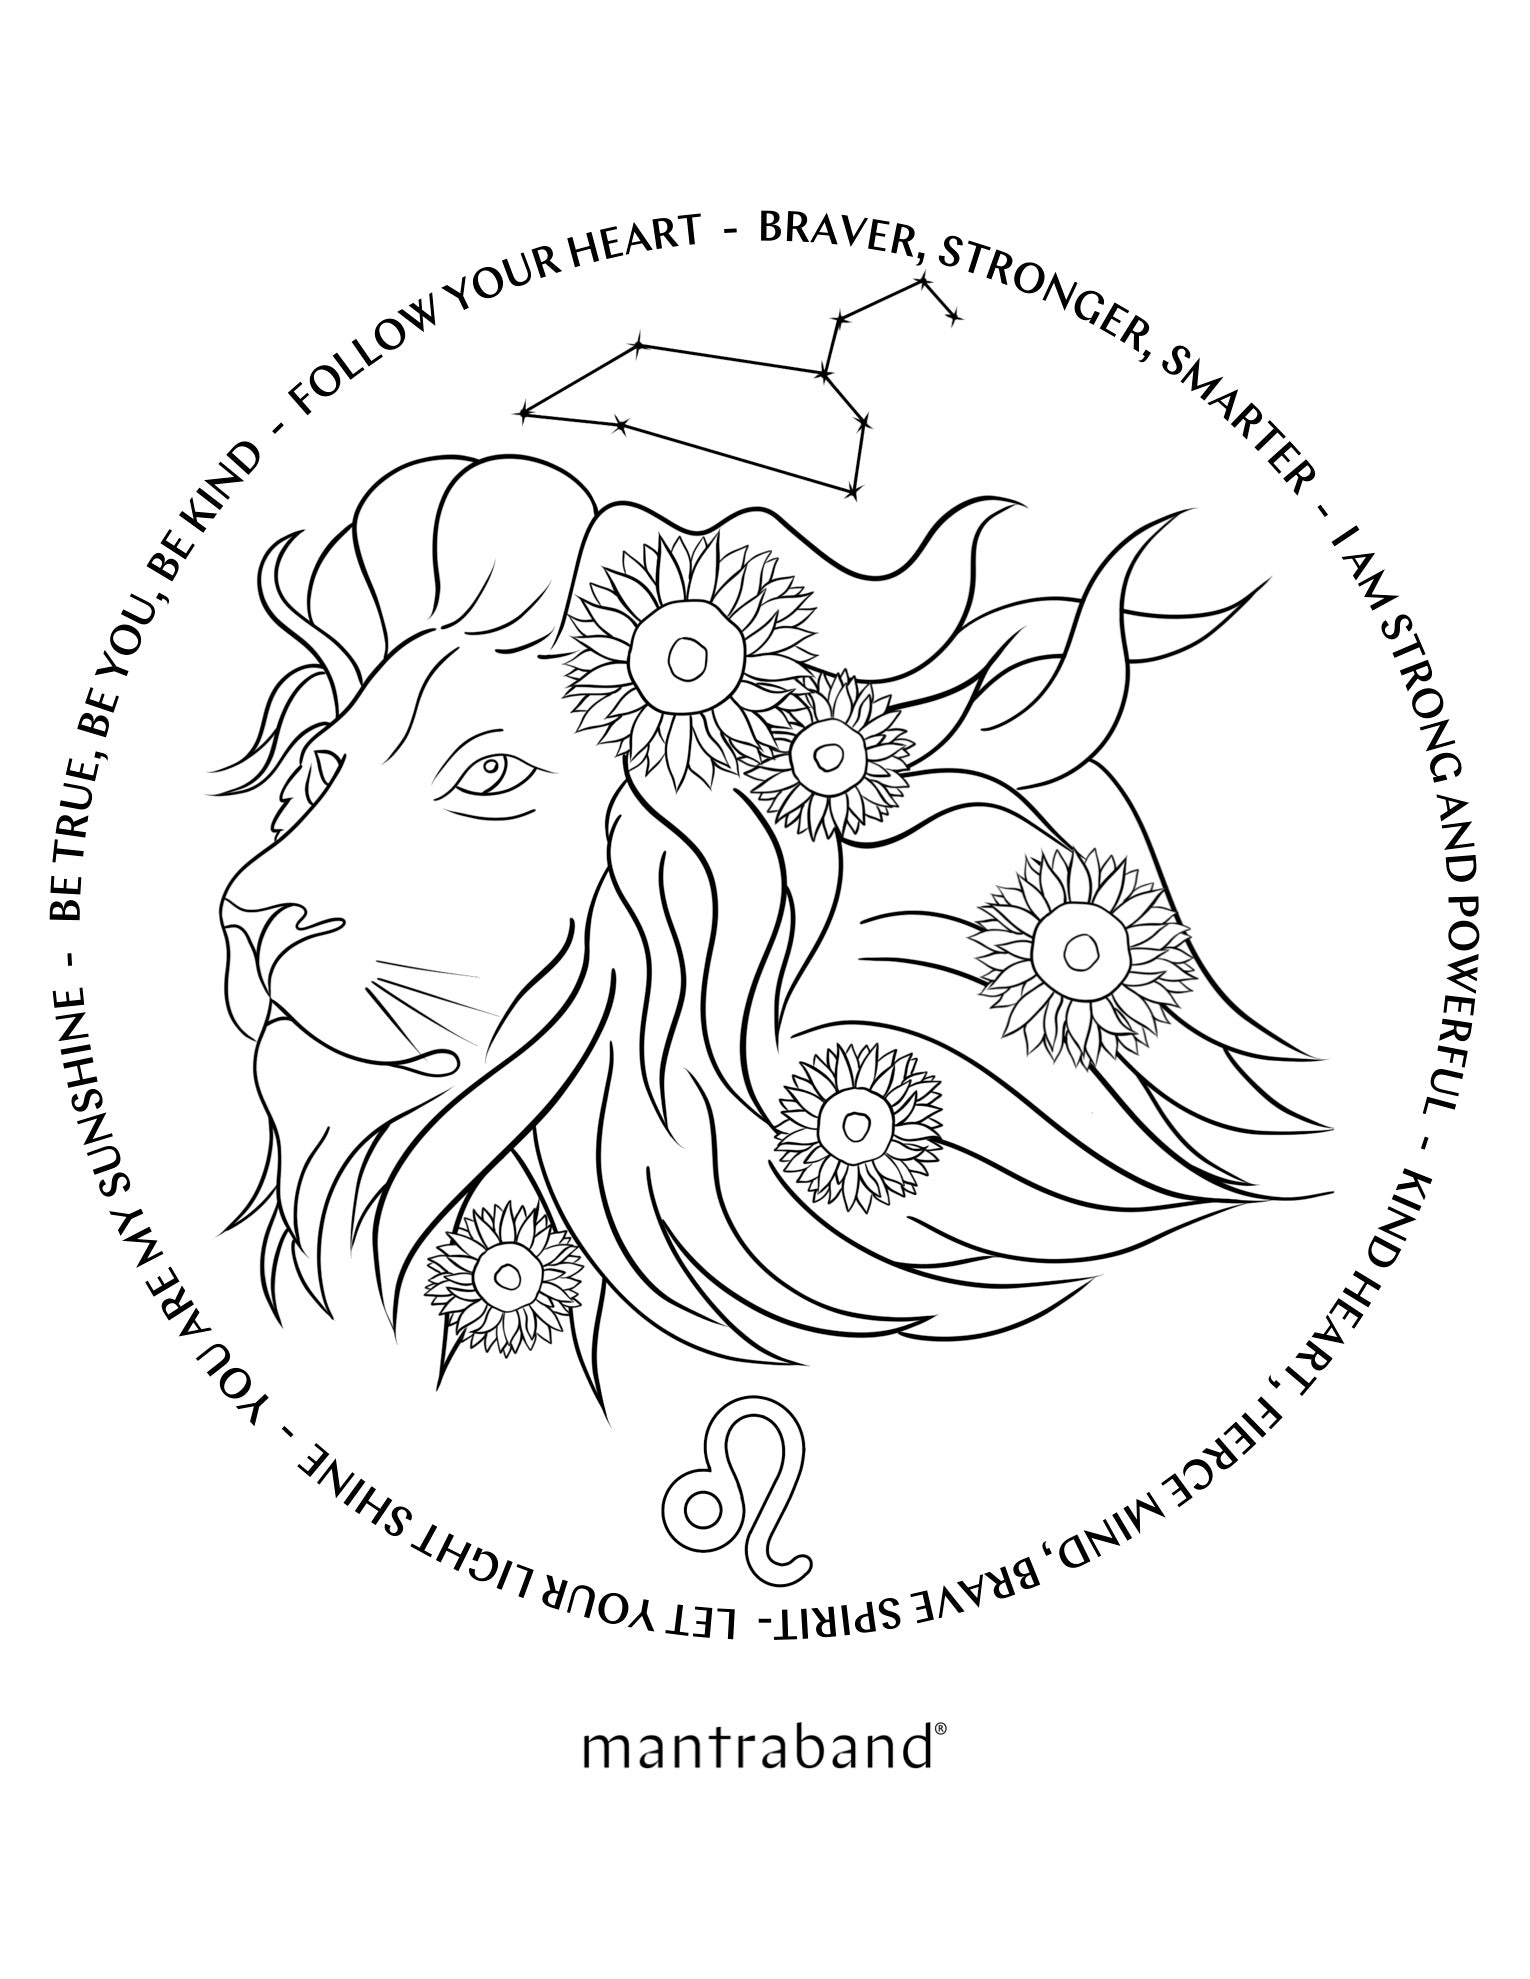 NATIONAL COLORING BOOK DAY CHALLENGE - LEO SEASON